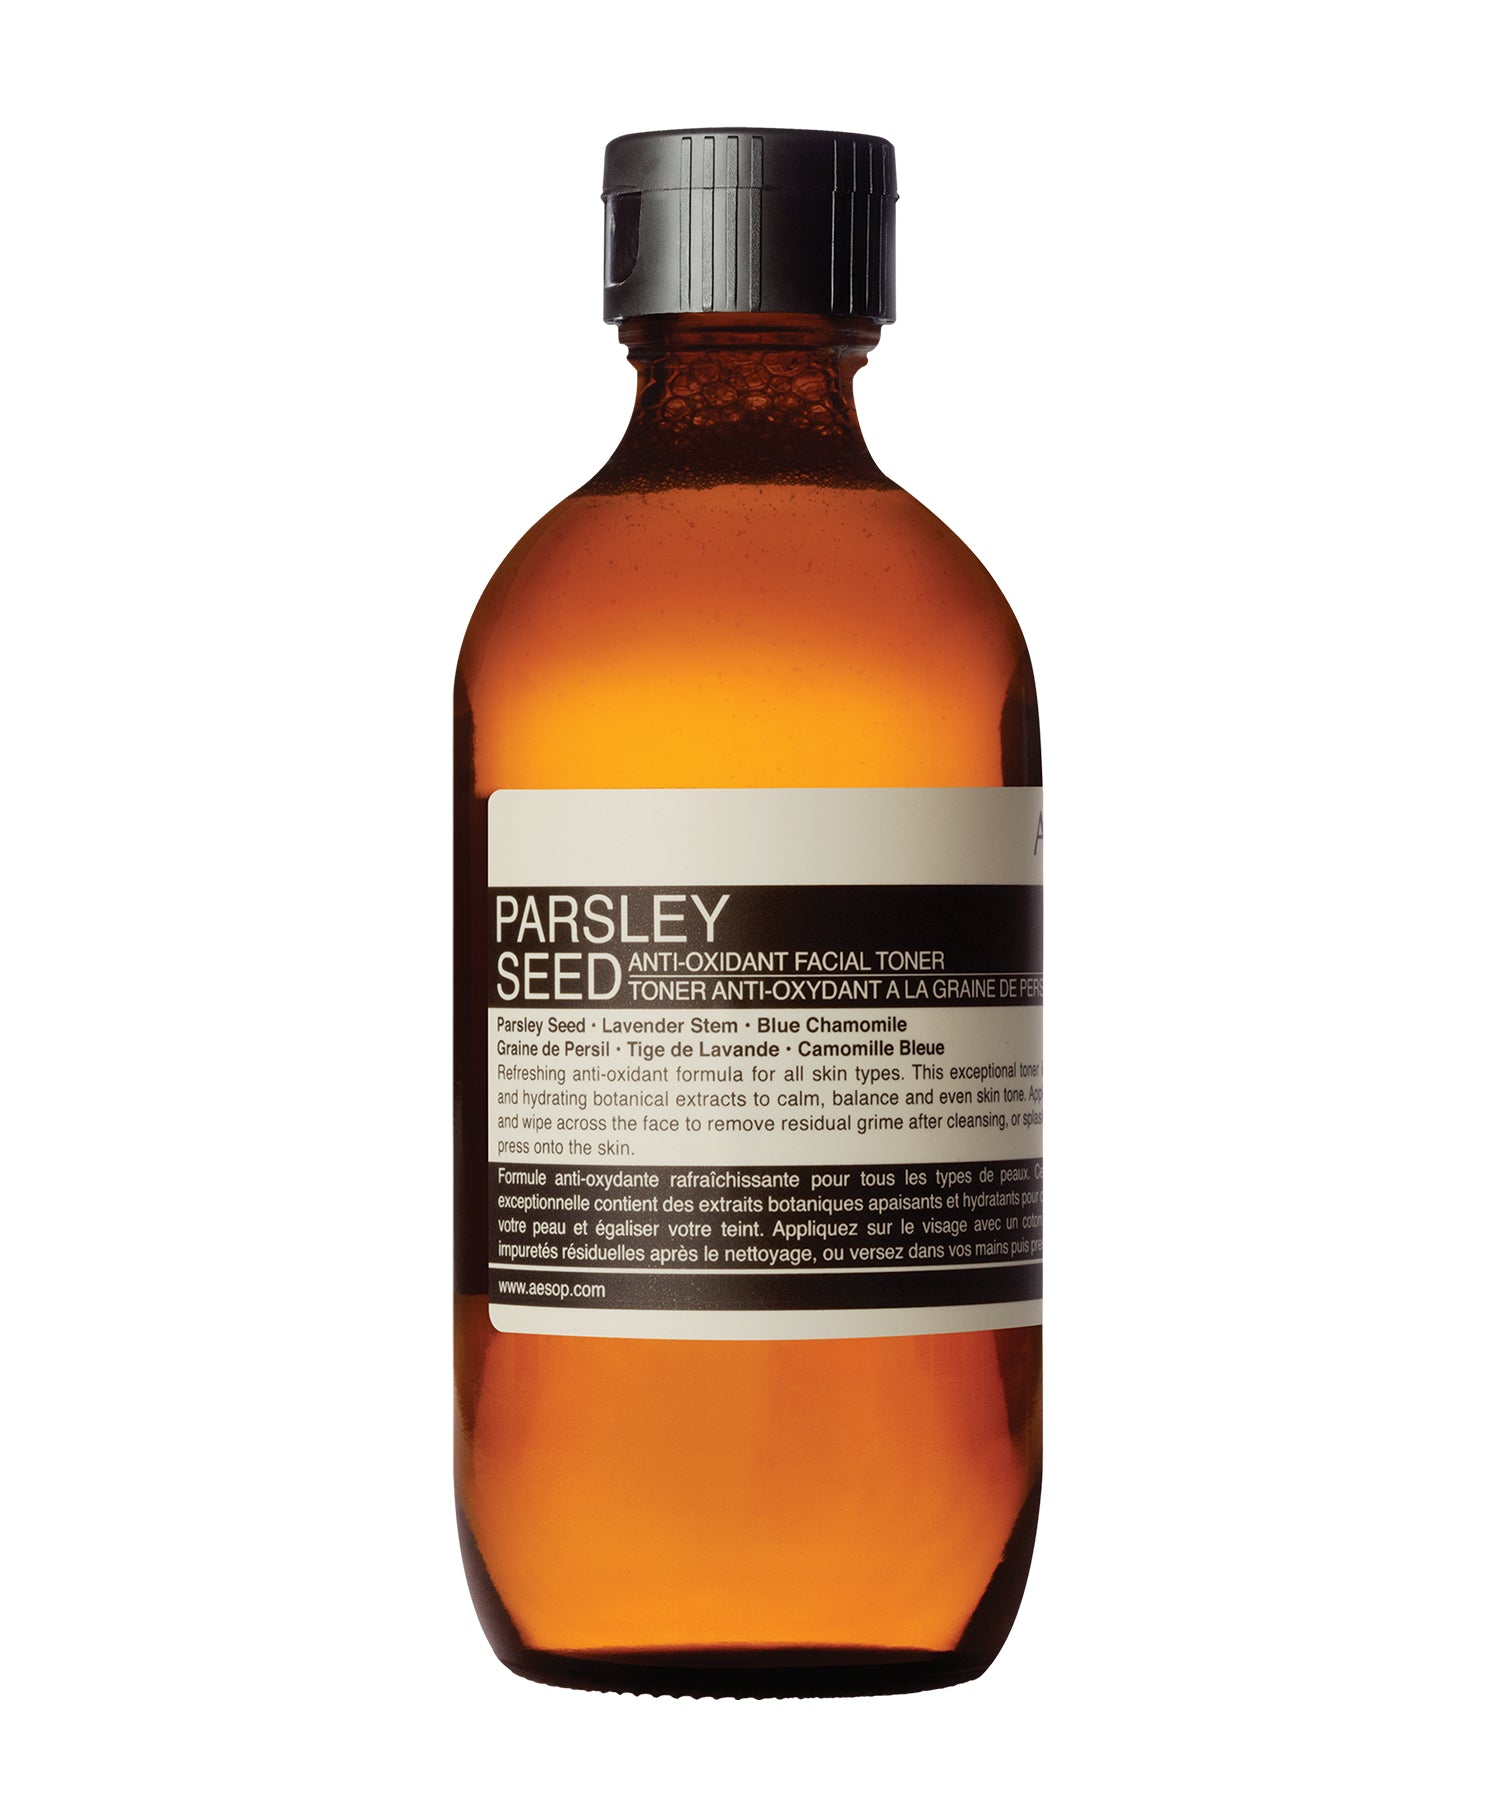 AESOP Parsley Seed Anti-Oxidant Facial Toner 200mL